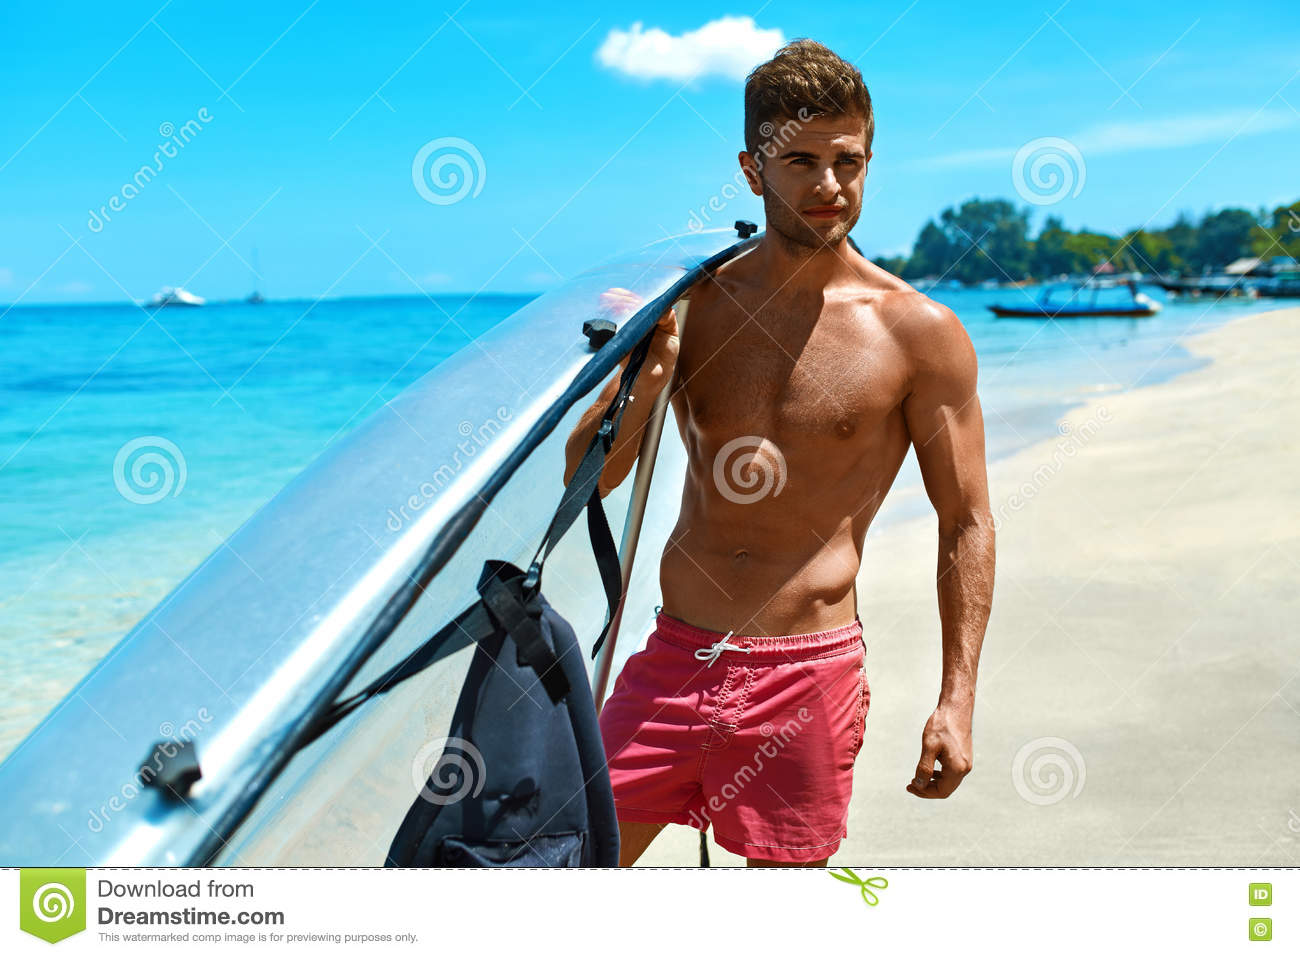 Transparent Canoe Kayak Summer Travel Water Sport Man Holding Canoe Kayak On Beach Stock